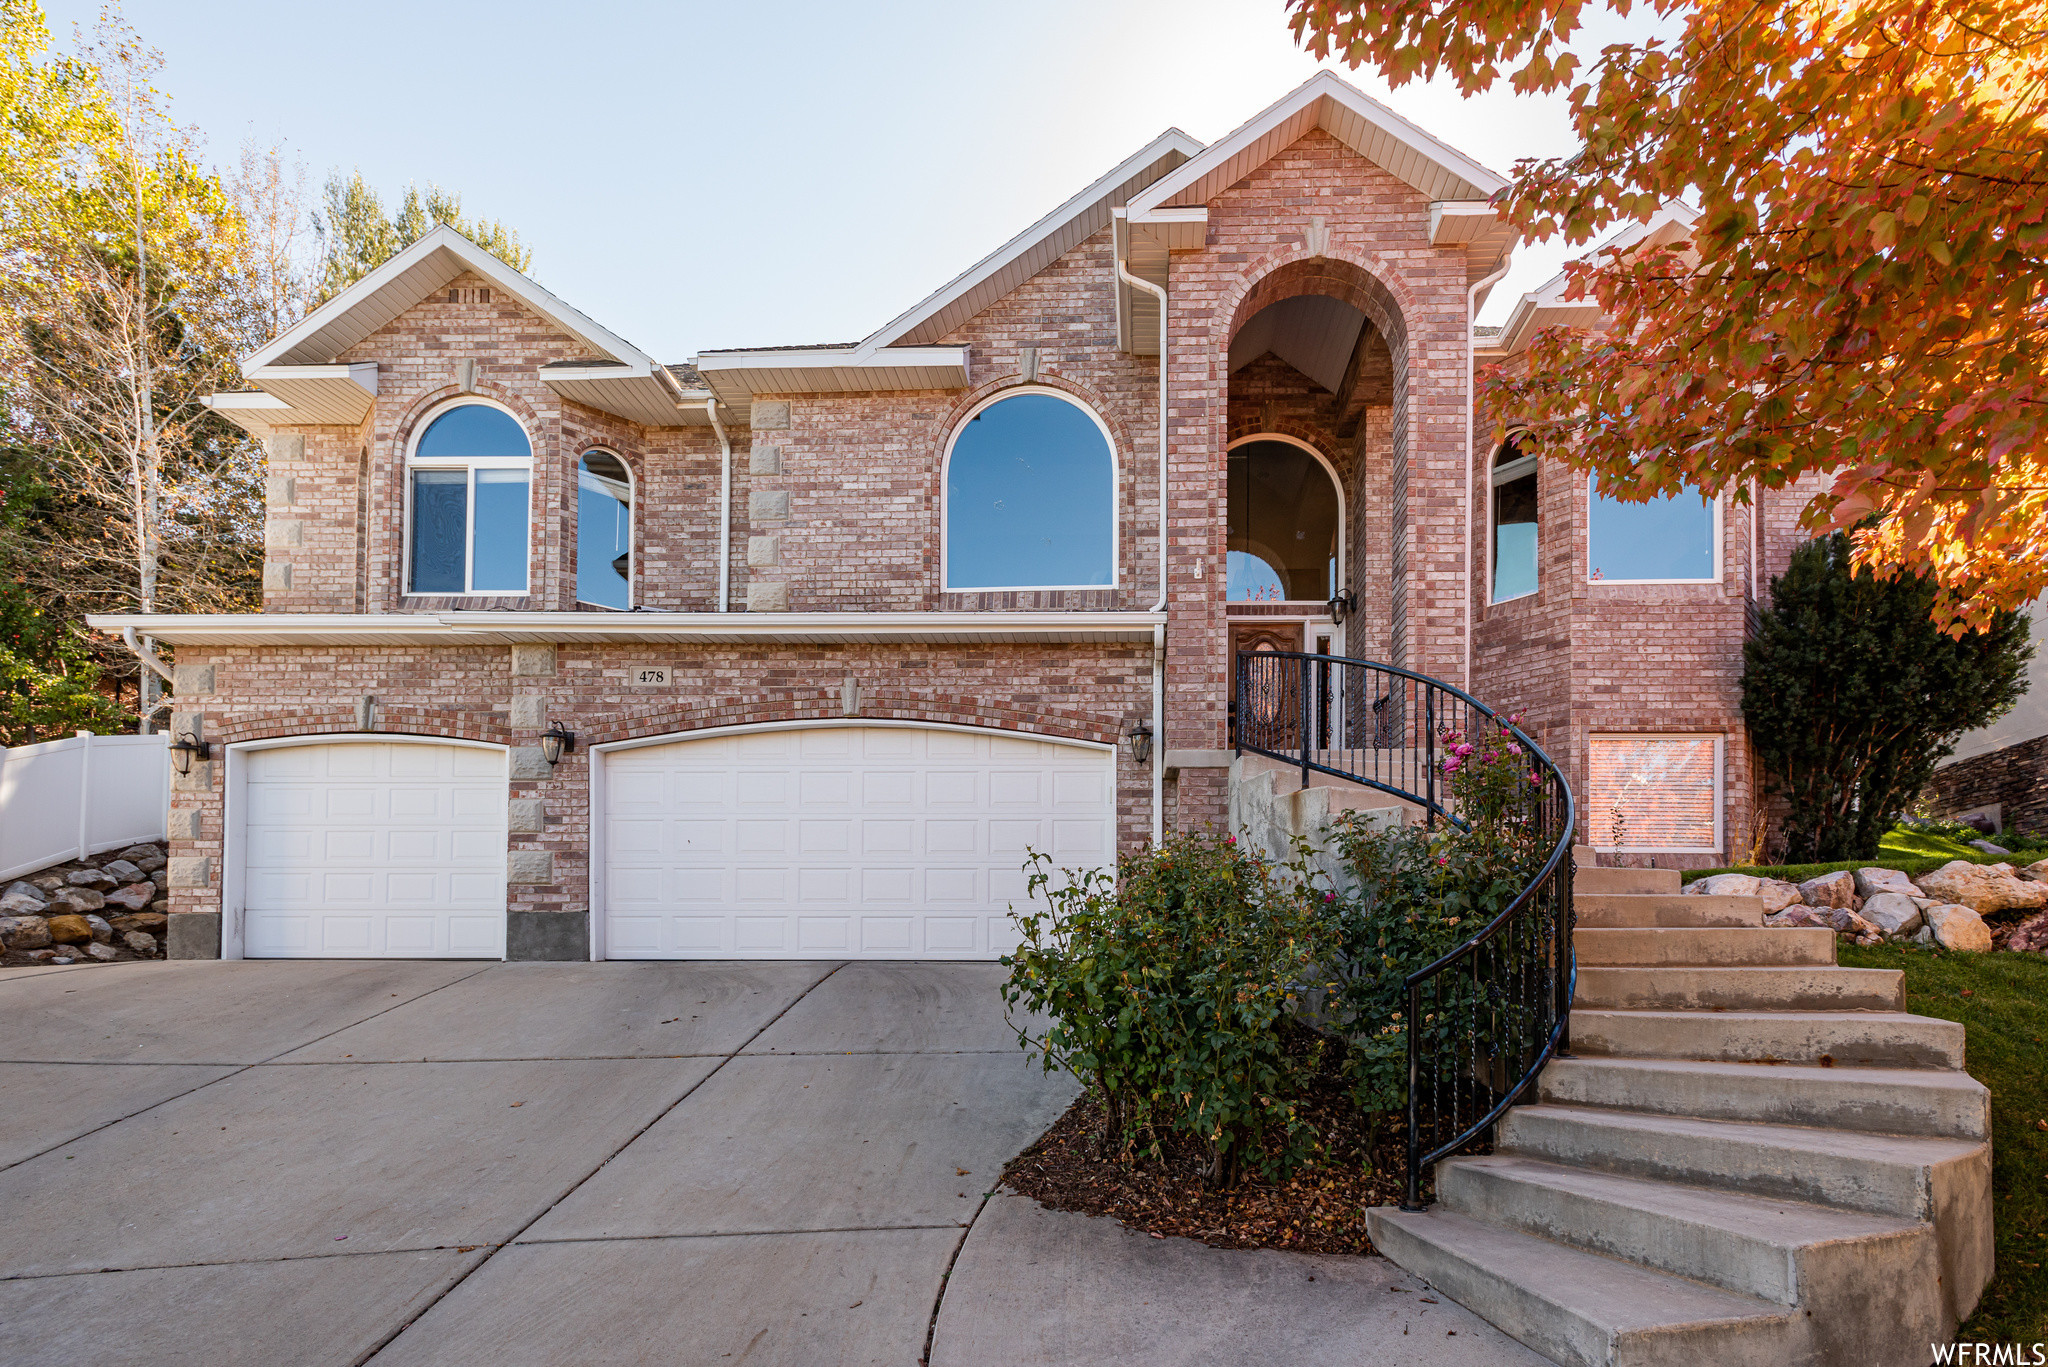 4-Bedroom House In Mountain Point